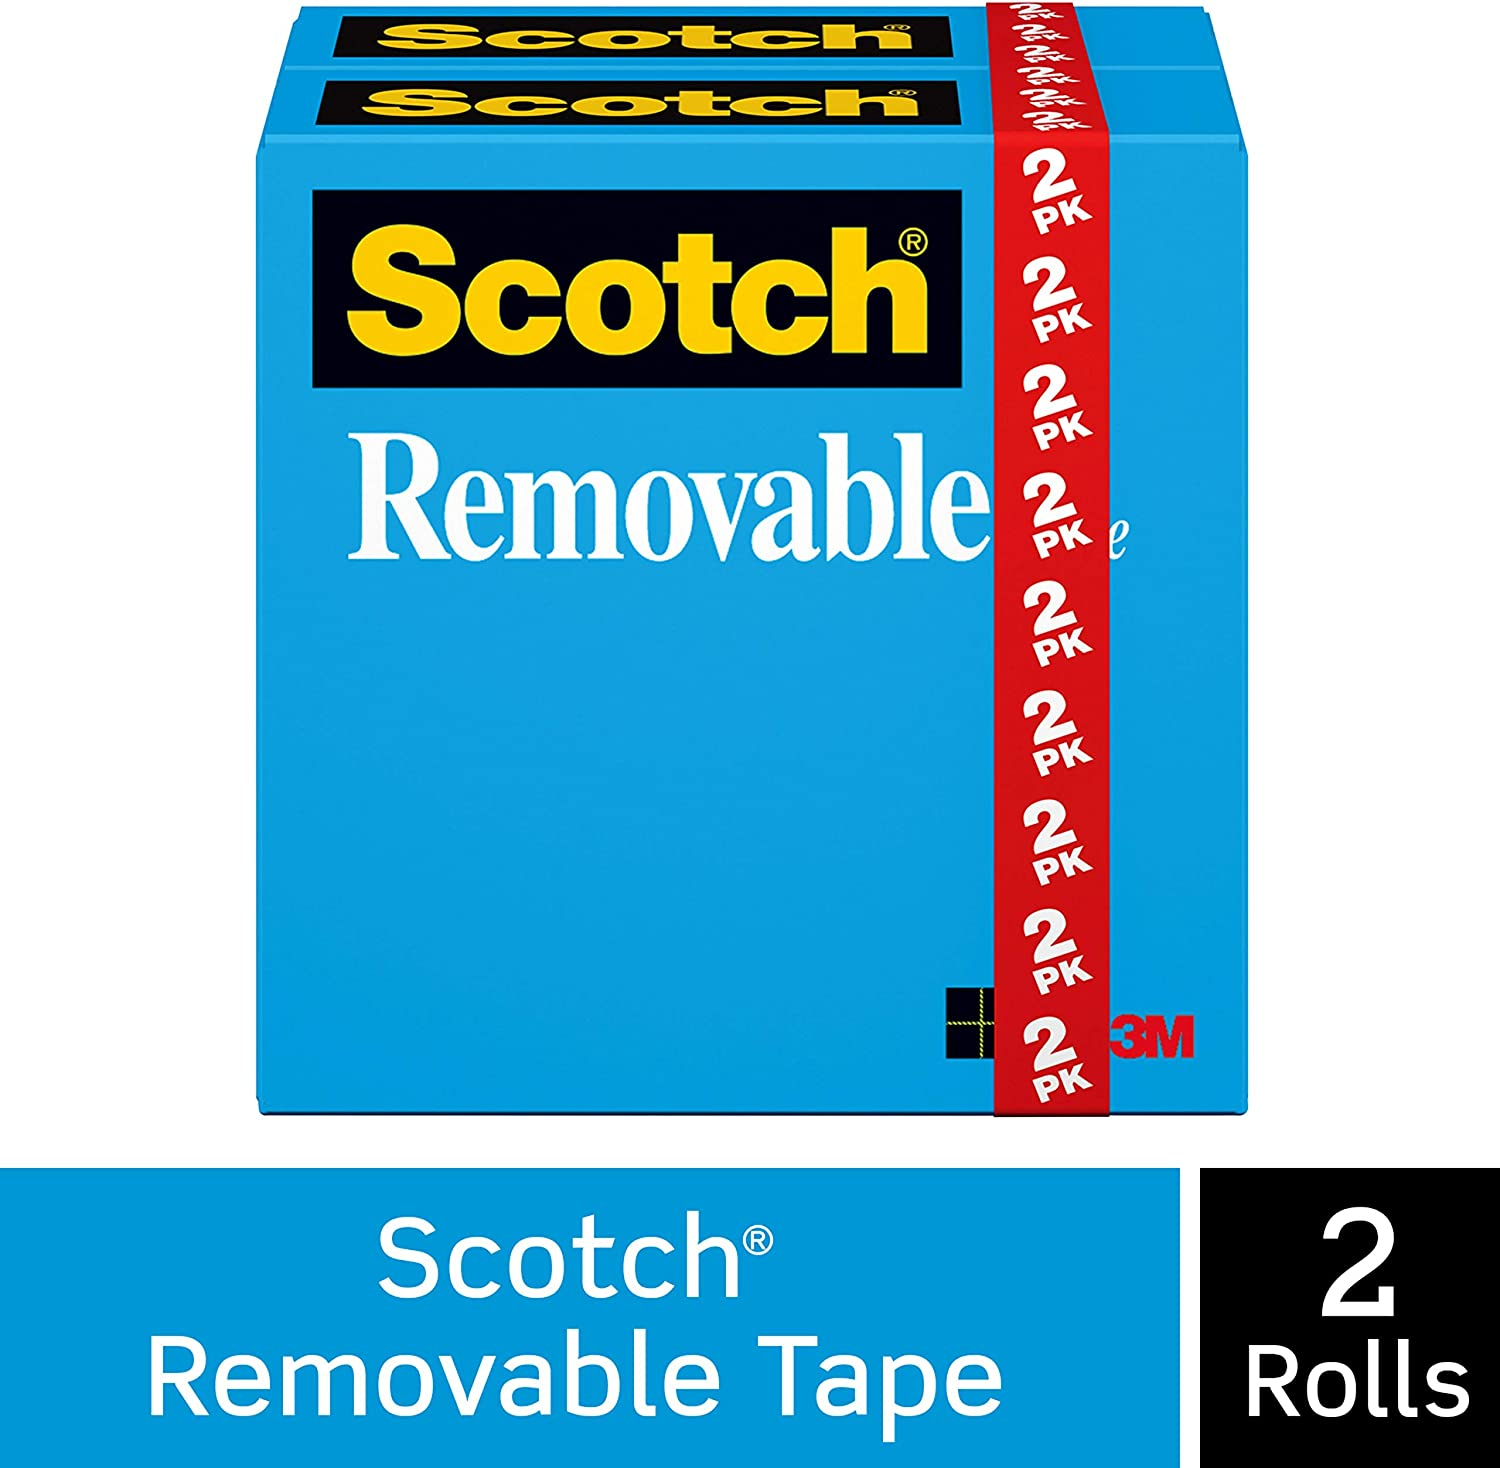 Scotch Removable Tape, Non-Damaging, Invisible, Engineered for Hanging, 3/4 x 1296 Inches, Boxed, 2 Rolls (811-2PK)